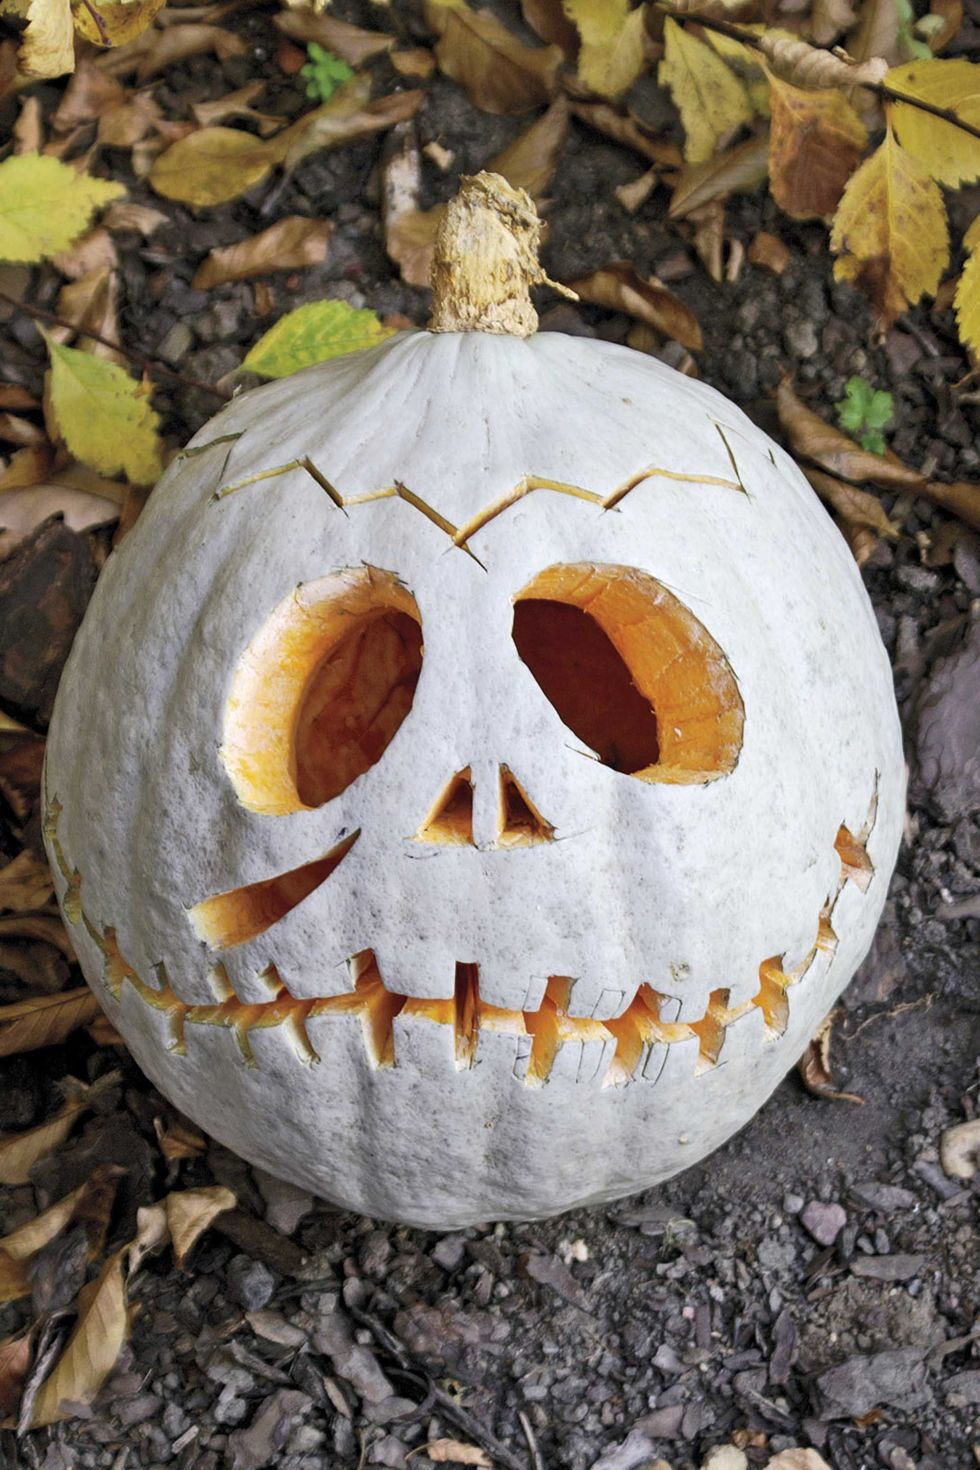 65 best pumpkin carving ideas halloween 2017 creative jack o lantern designs - Decorated Halloween Pumpkins